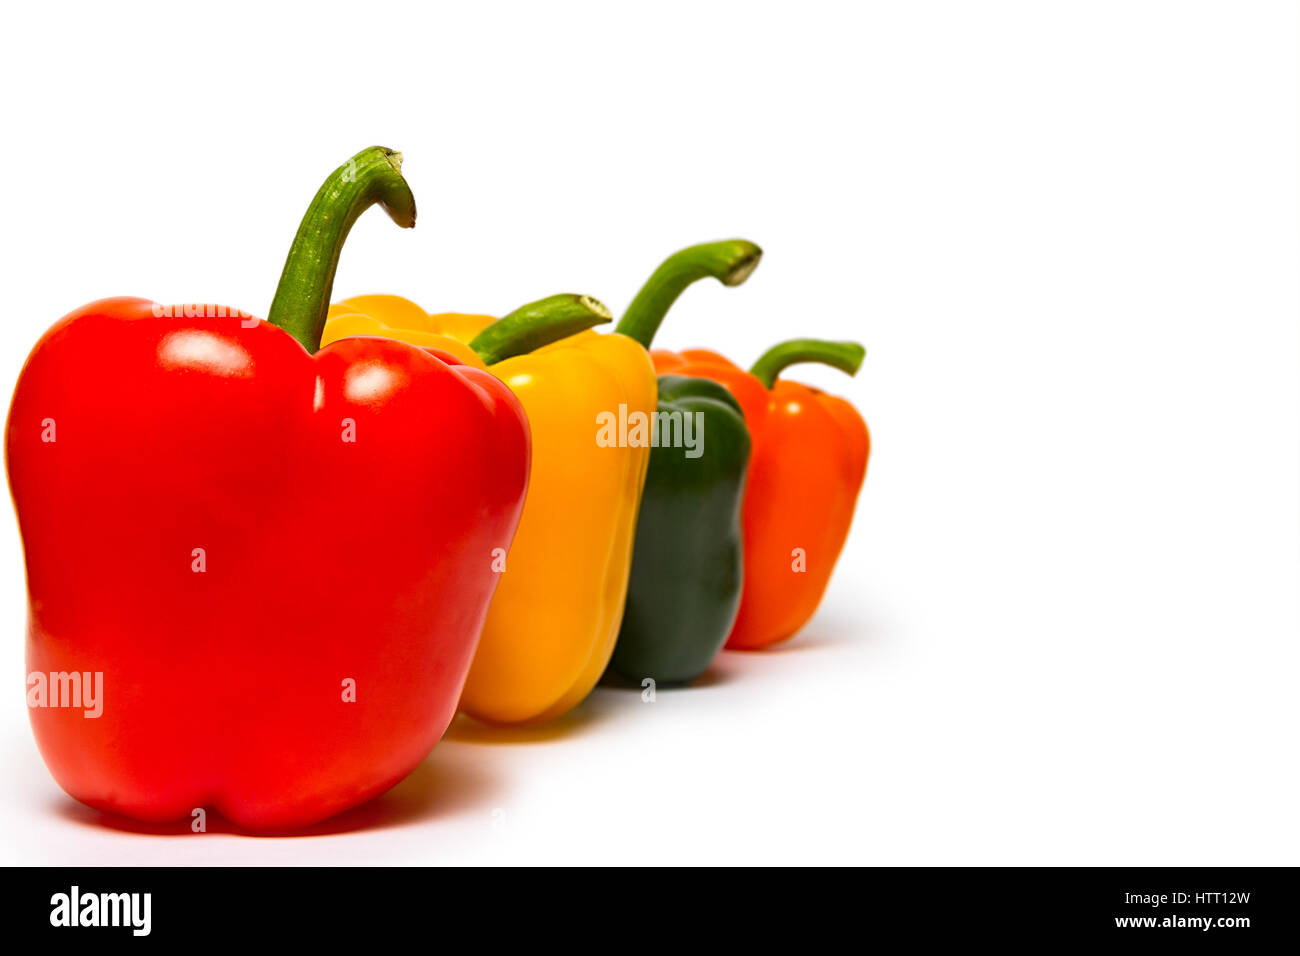 Red green and orange sweet bell peppers isolated on white background - Stock Image